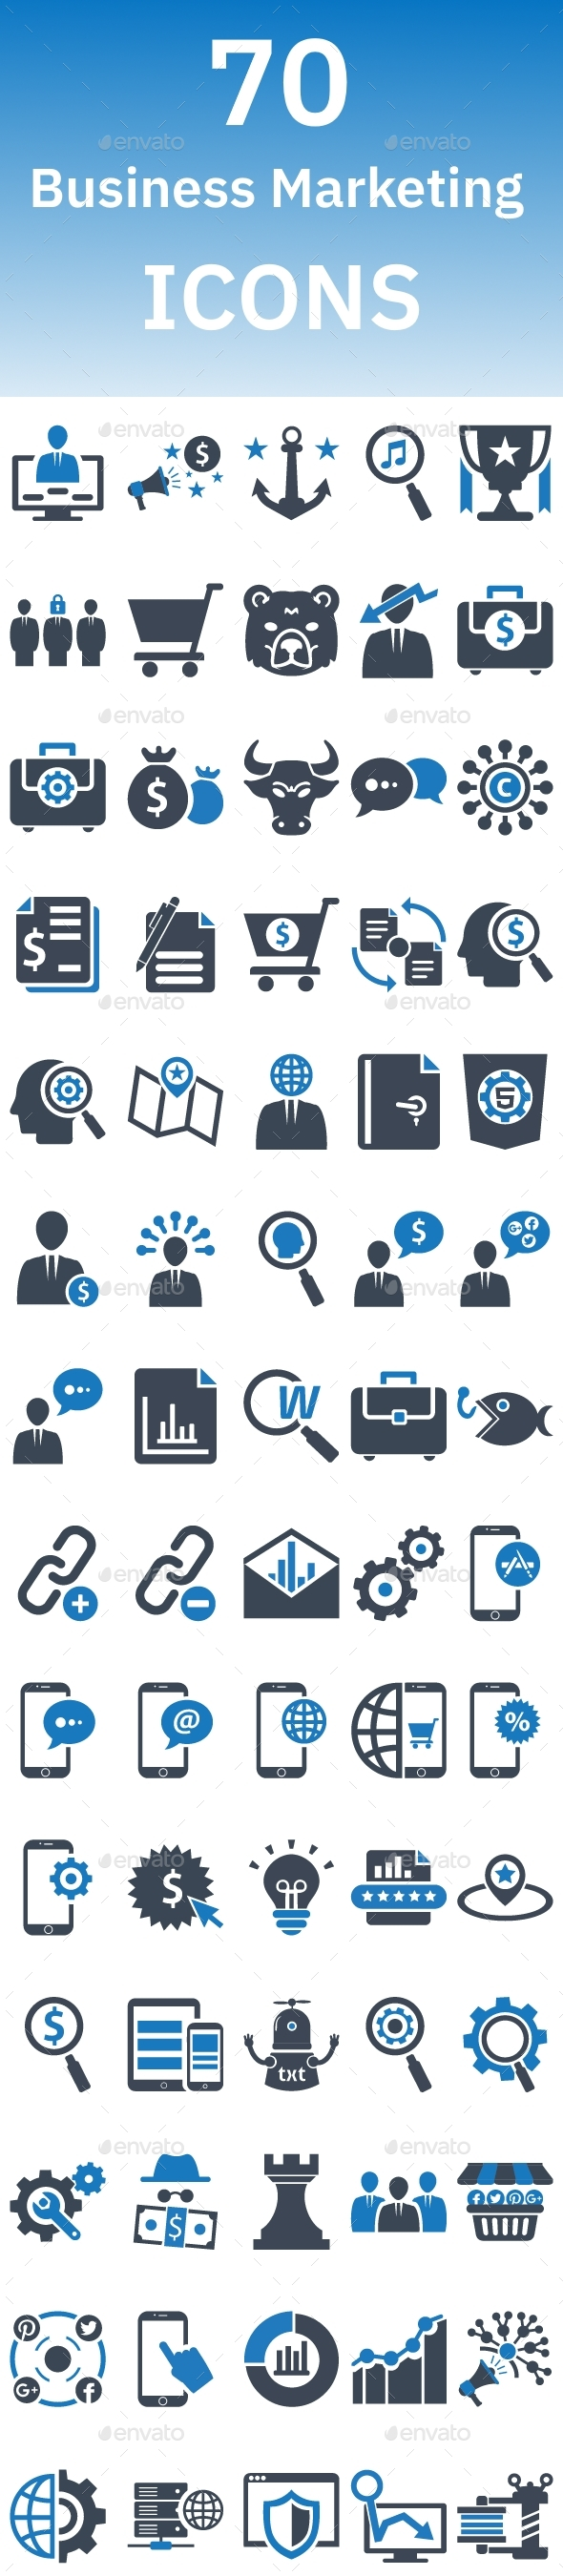 70 Business Marketing Icons - Business Icons